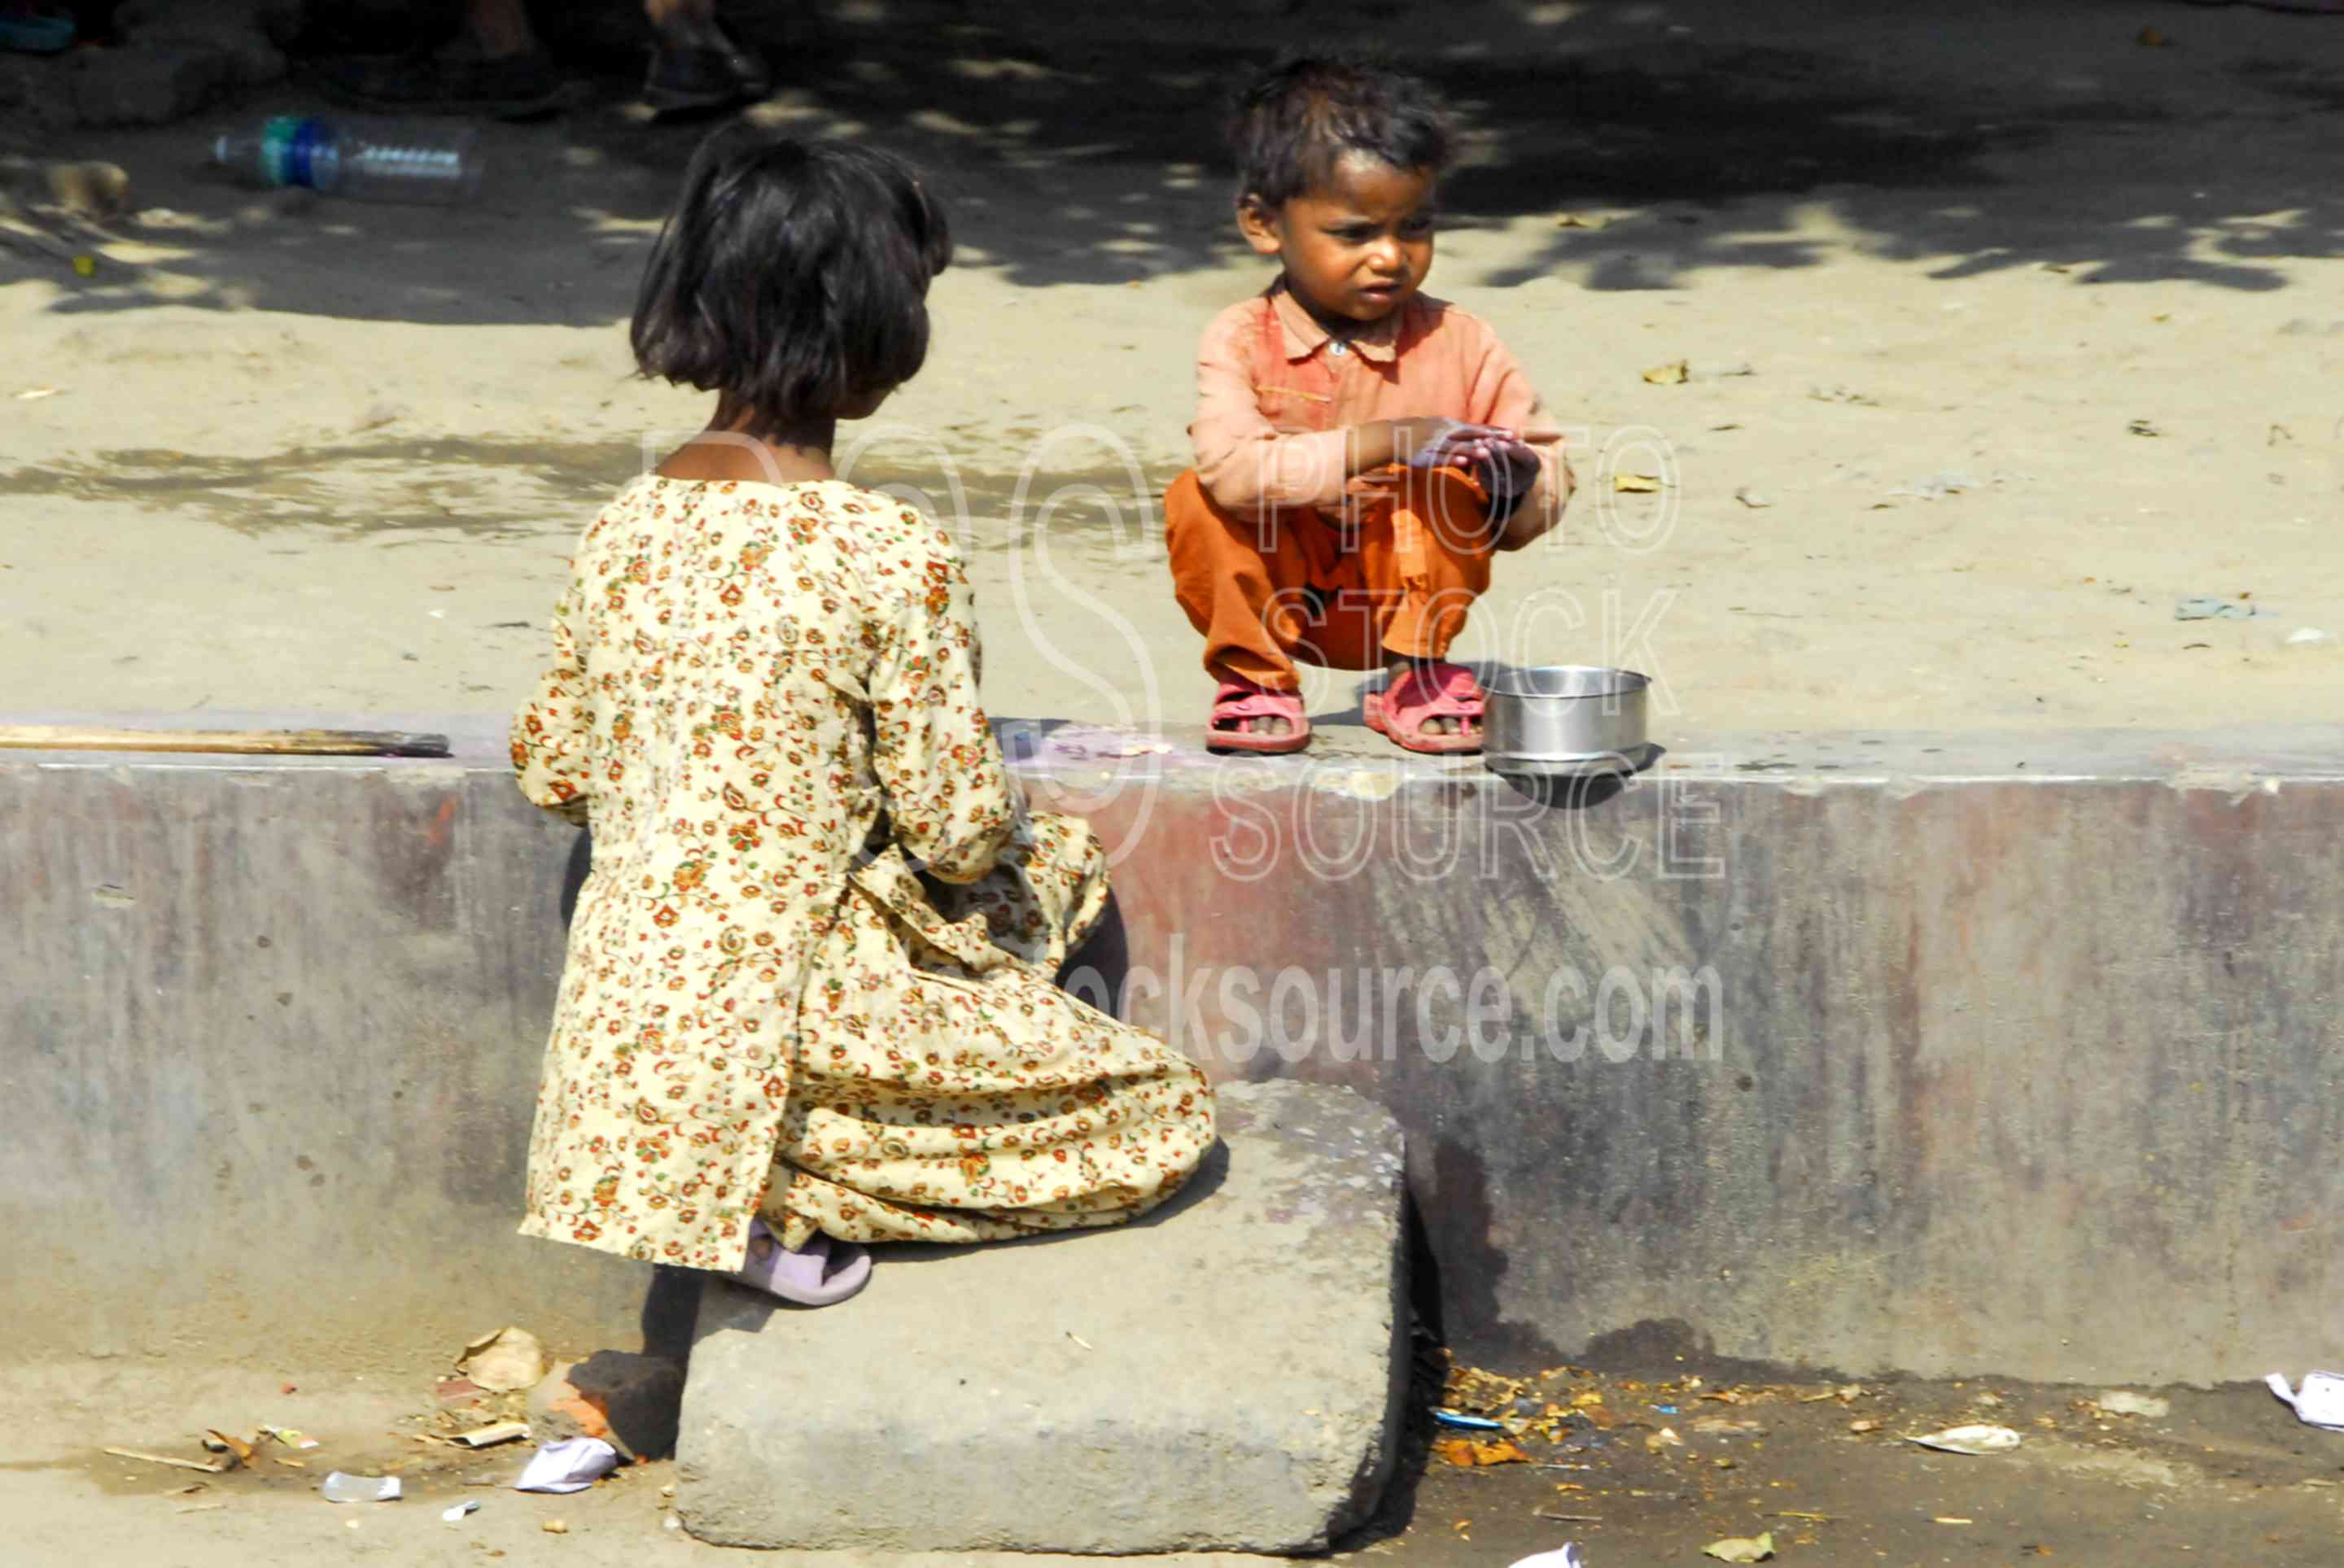 Children Playing on a Curb,kids,child,children,playing,street,curb